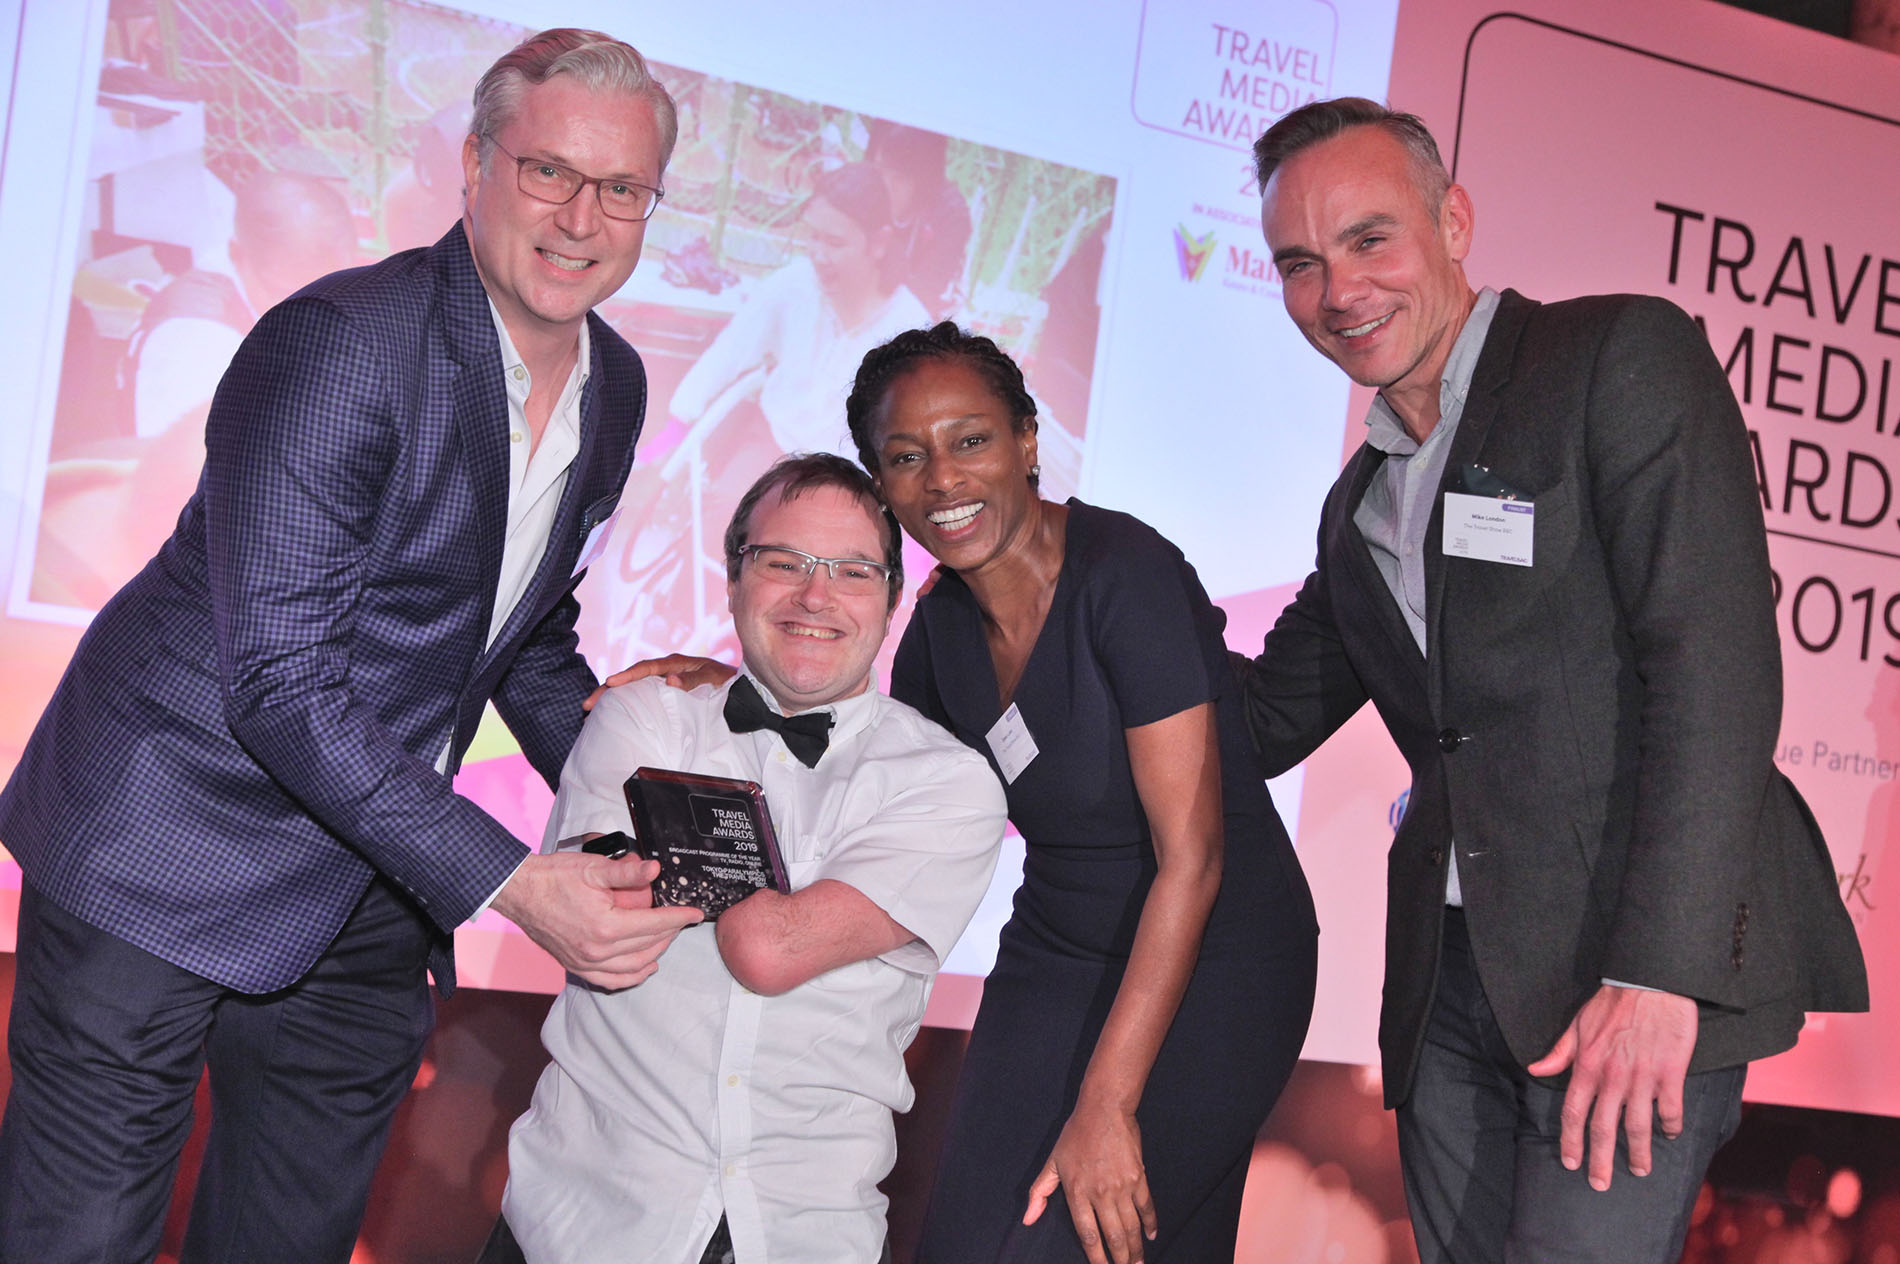 BBC Travel Show are presented with a Travel Media Award